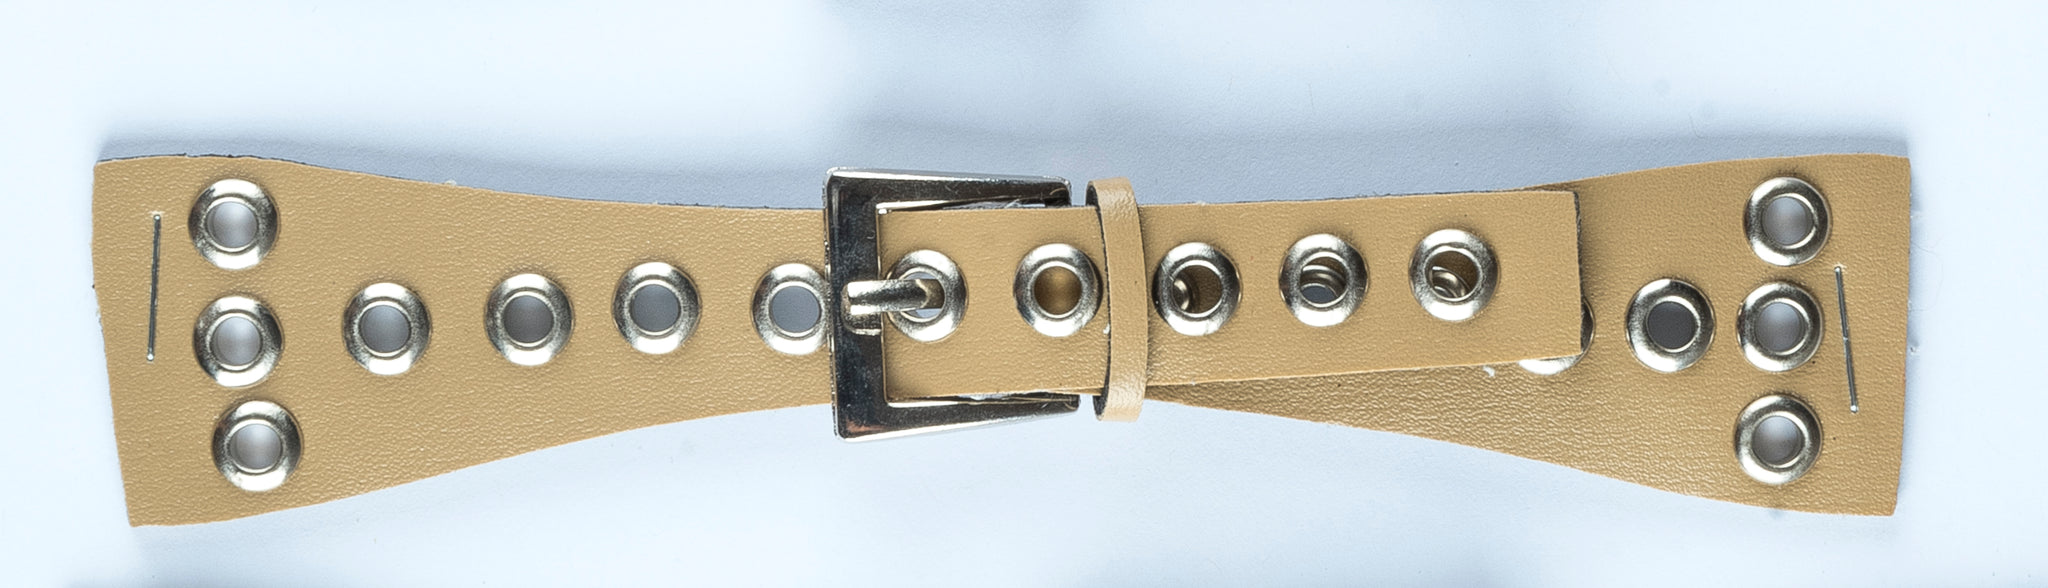 Mini Belt Buckle Connector  - Design 3 - Target Trim